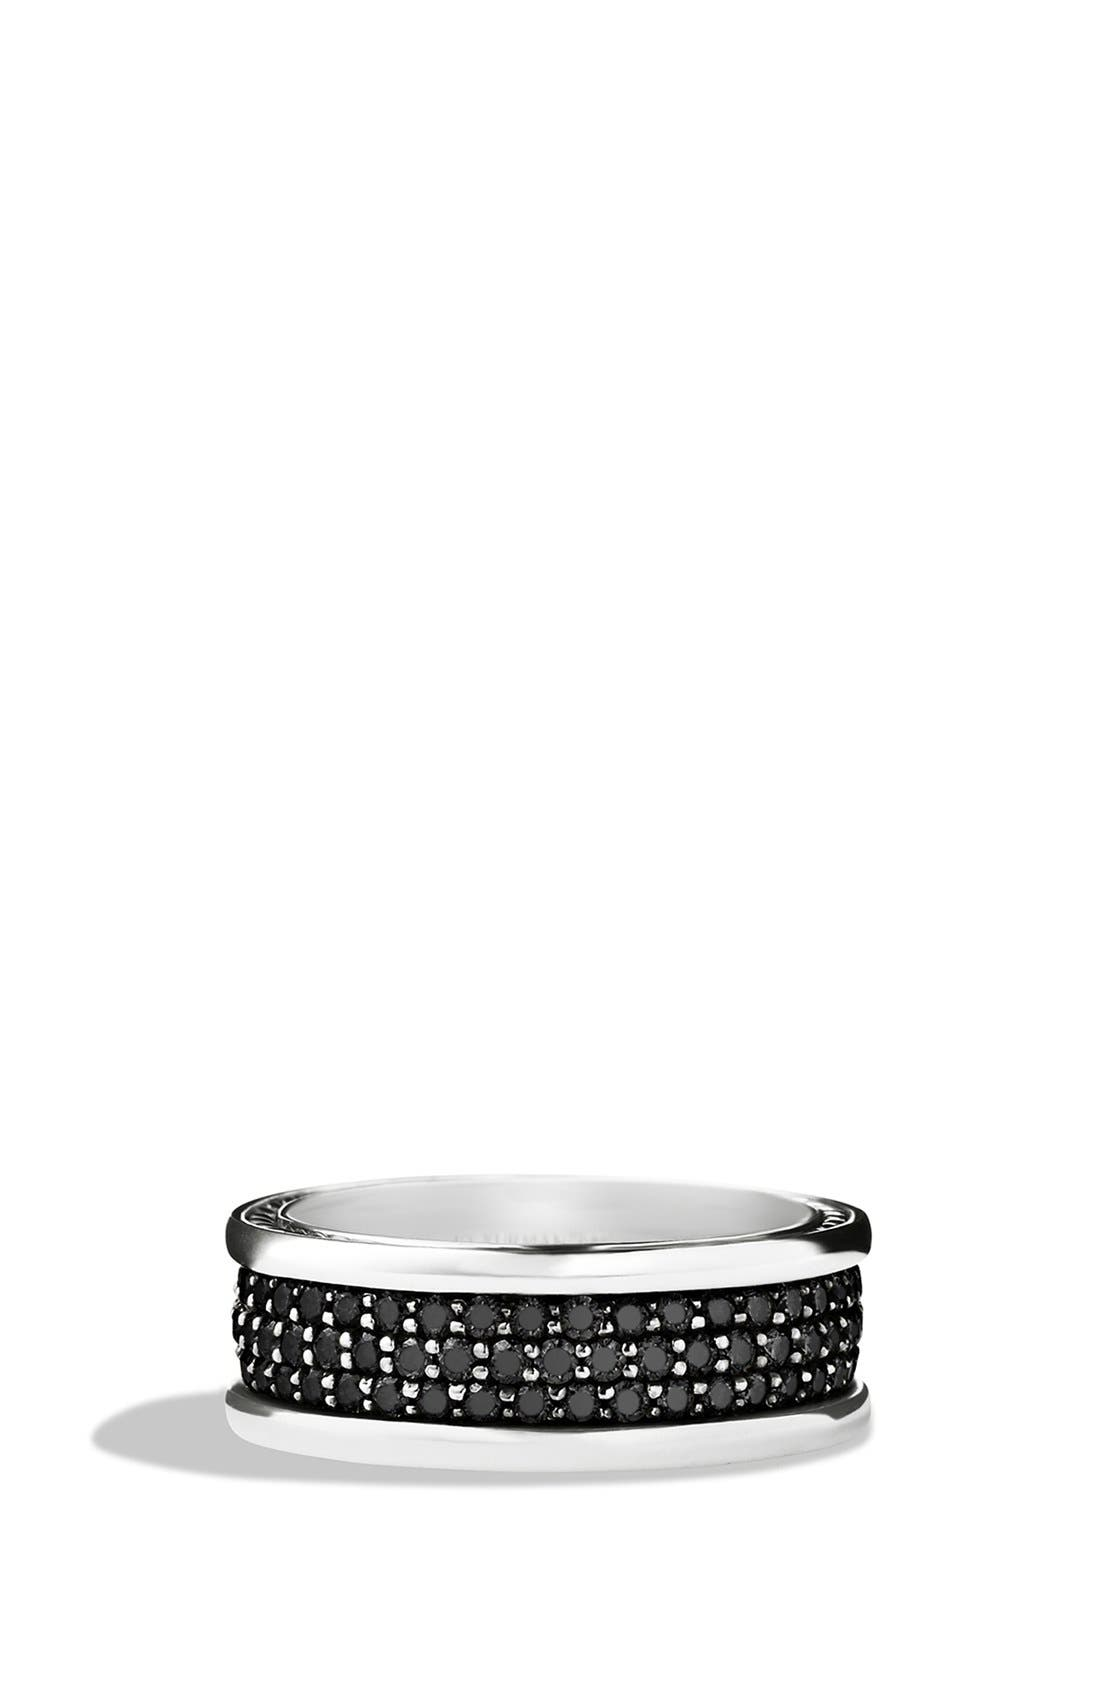 David Yurman 'Streamline' Band Ring with Black Diamonds